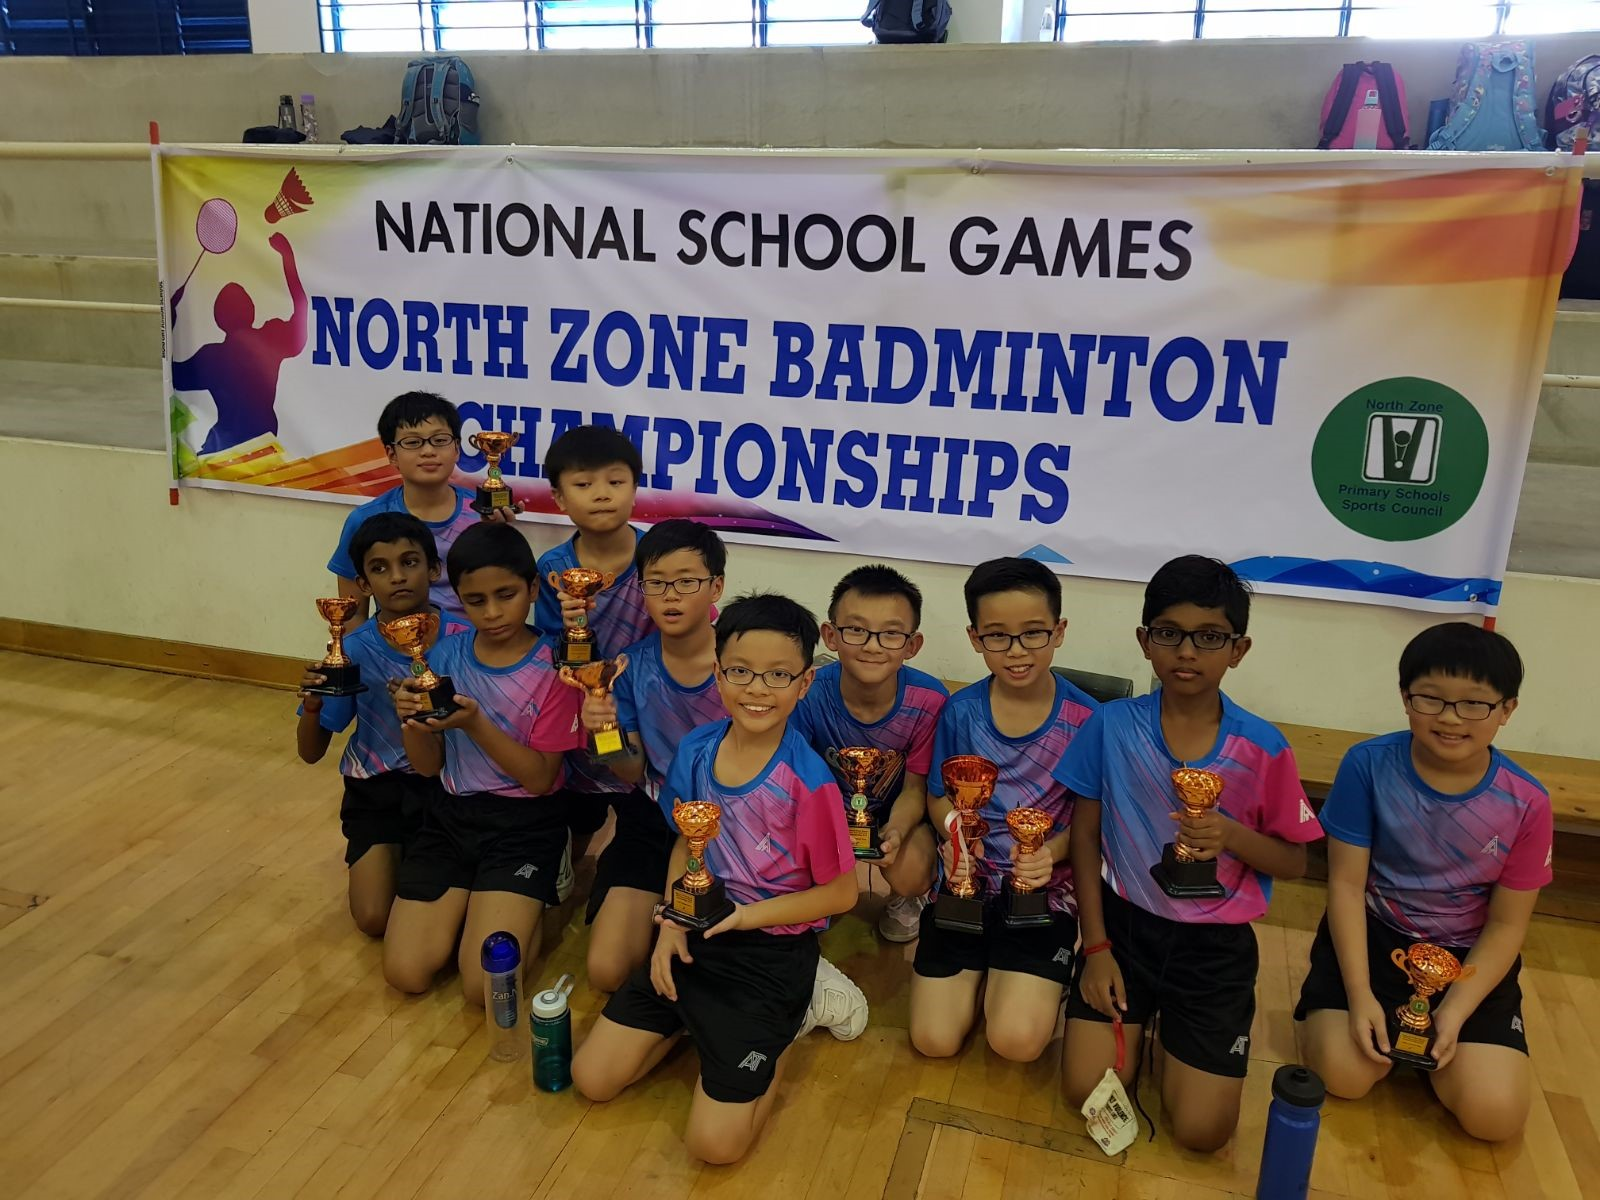 North Zone Primary Schools Badminton Championship 2018 - Participants